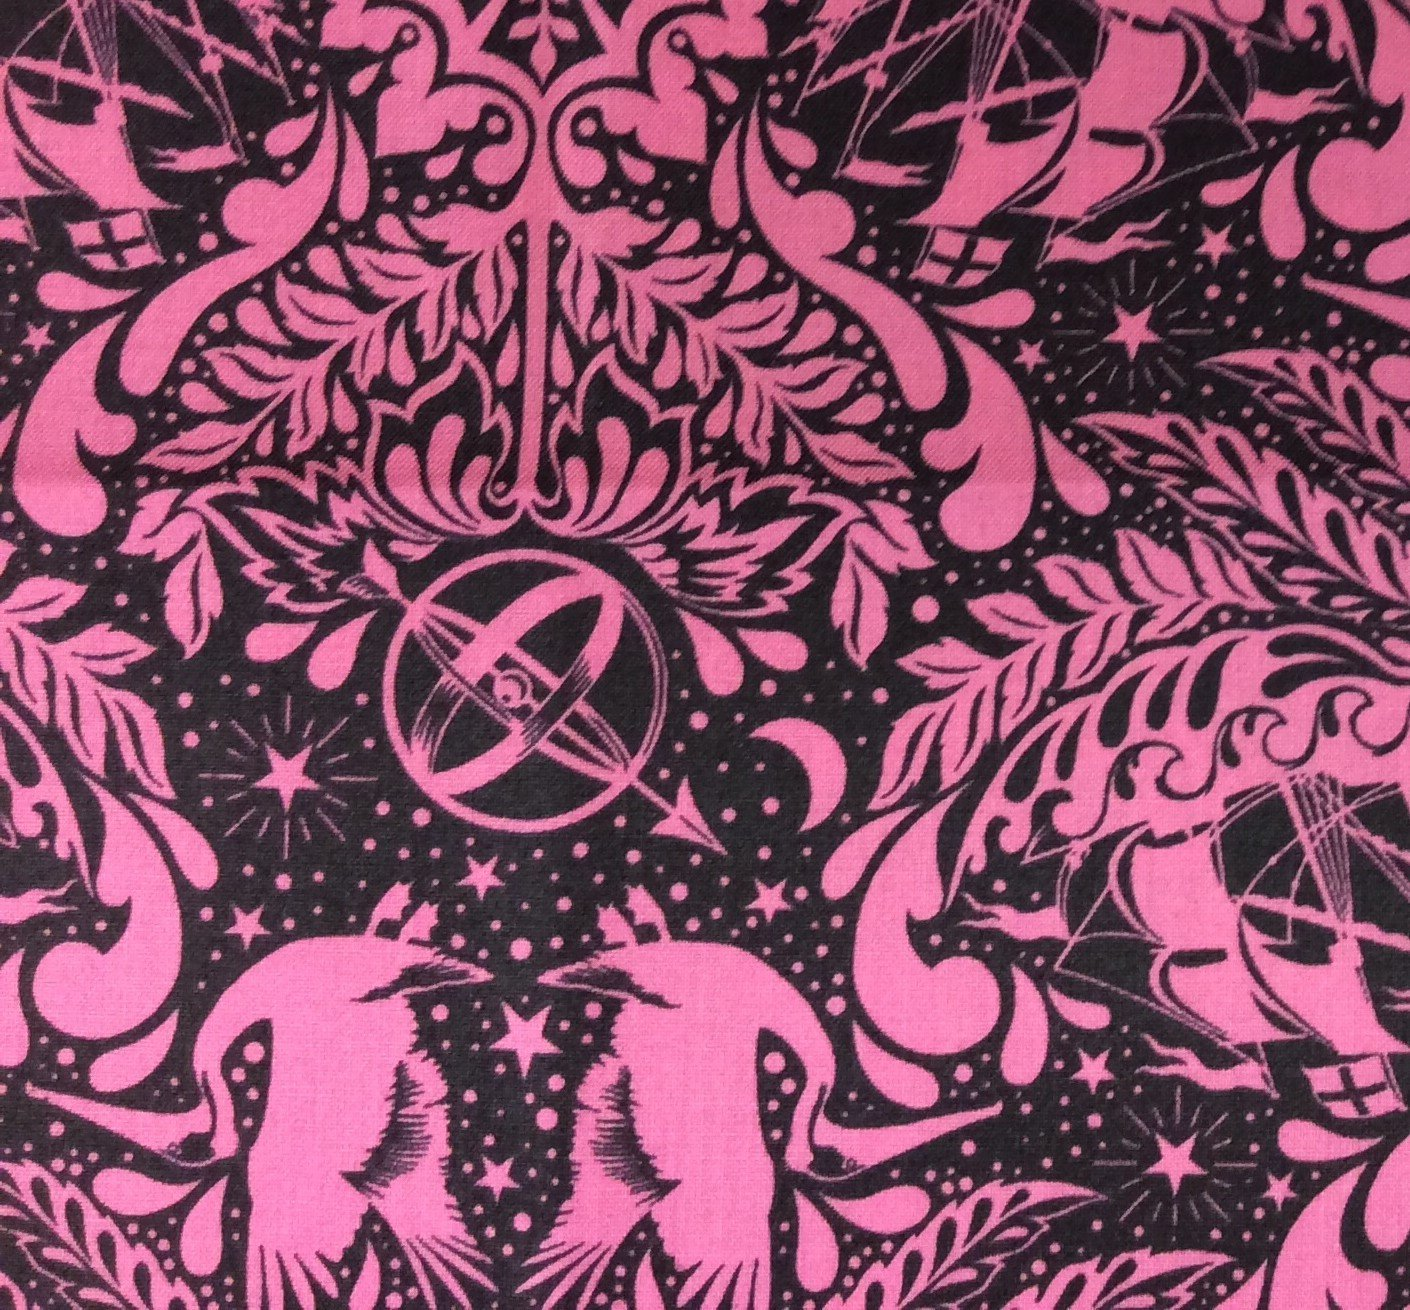 TULA PINK Royal Elizabeth Floral Goth Steampunk Cotton Quilting Fabric FT53